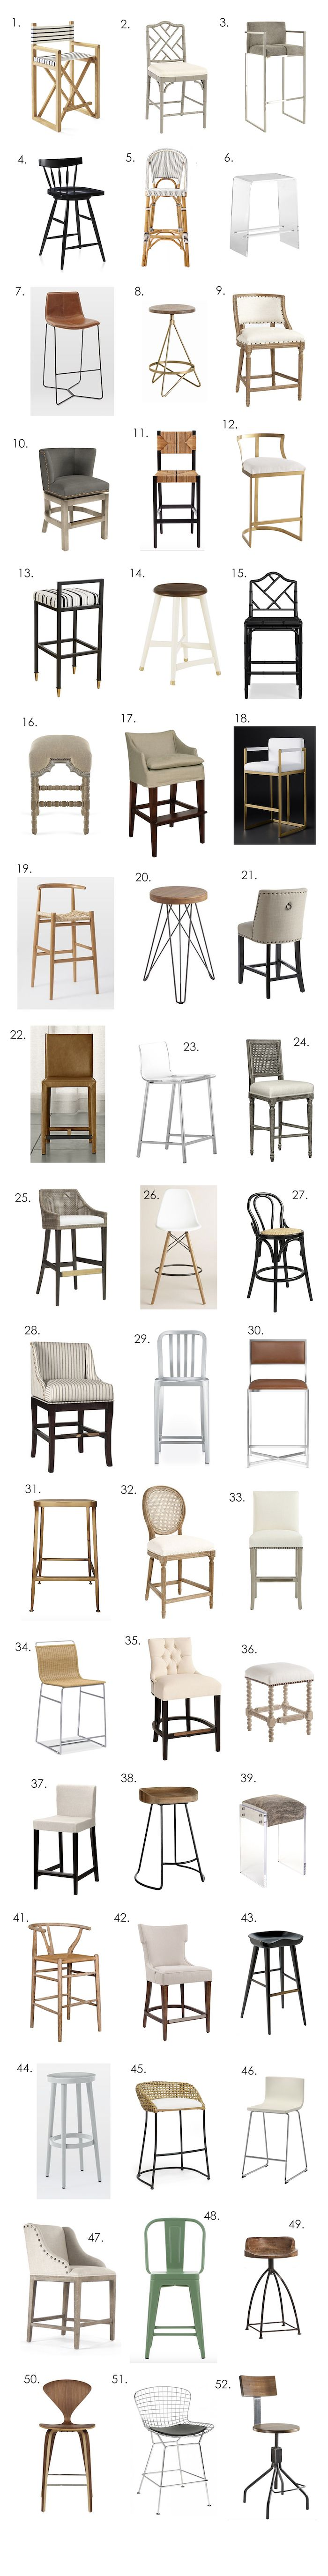 Elements of Style Blog   Giant Counter Stool Roundup   http://www ...